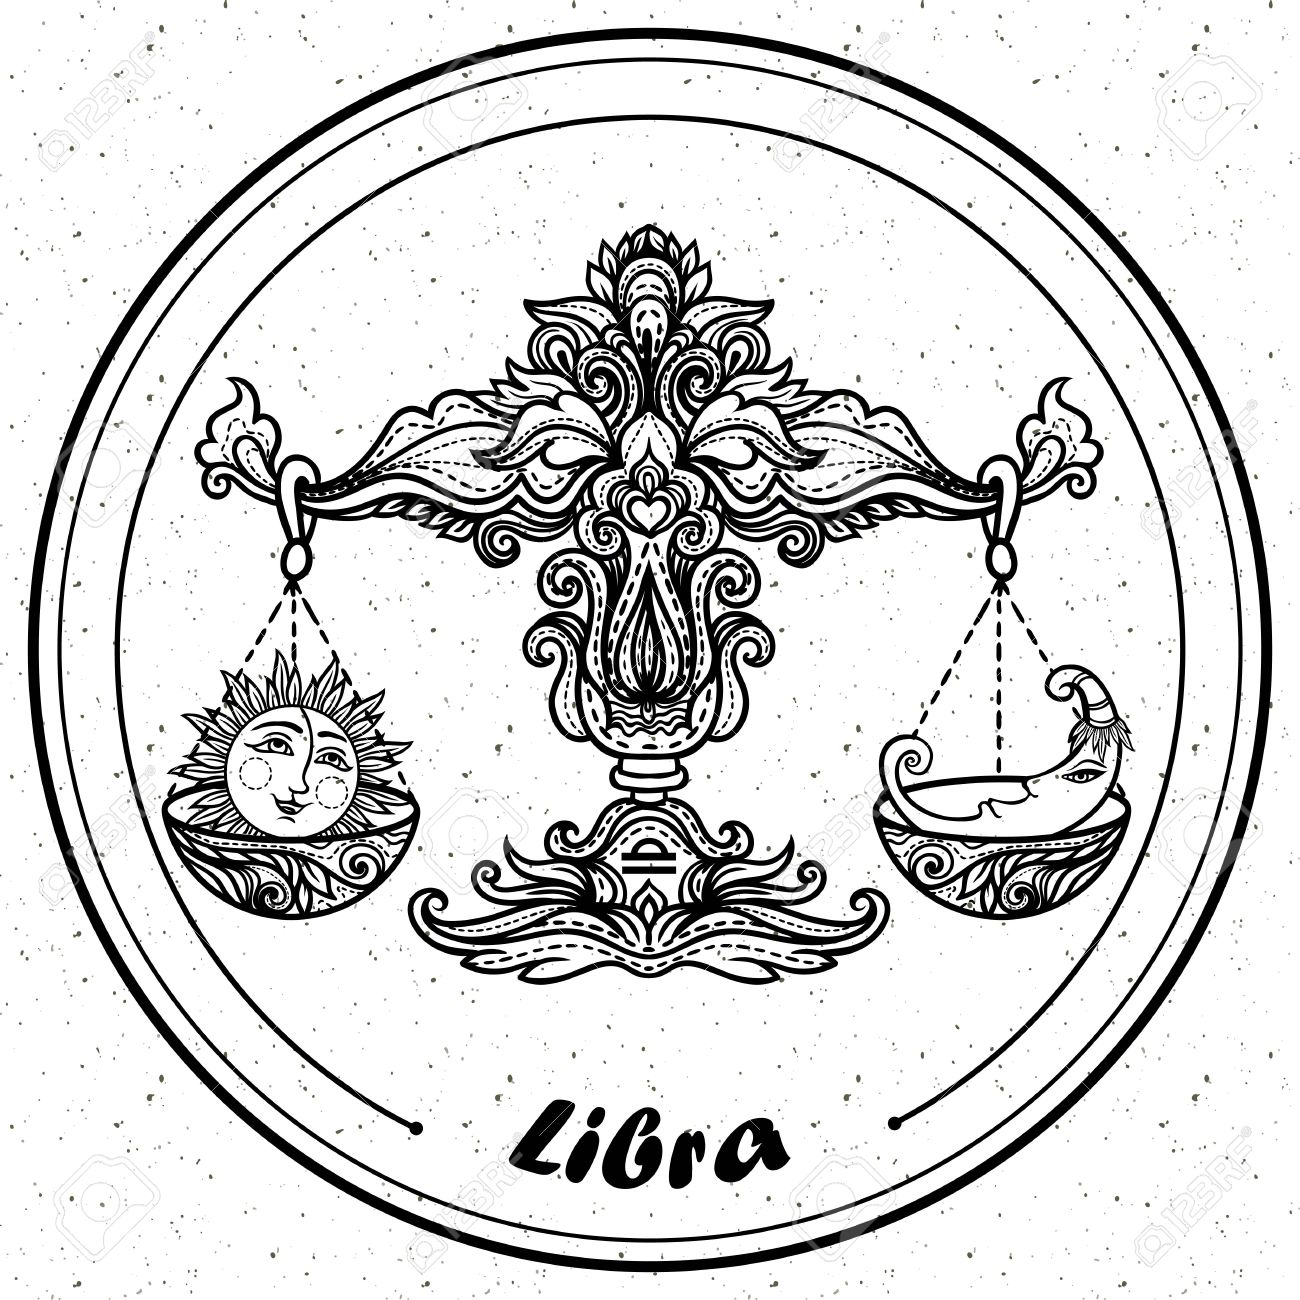 1300x1300 Detailed Libra In Aztec Filigree Line Art Style. Tattoo, Coloring